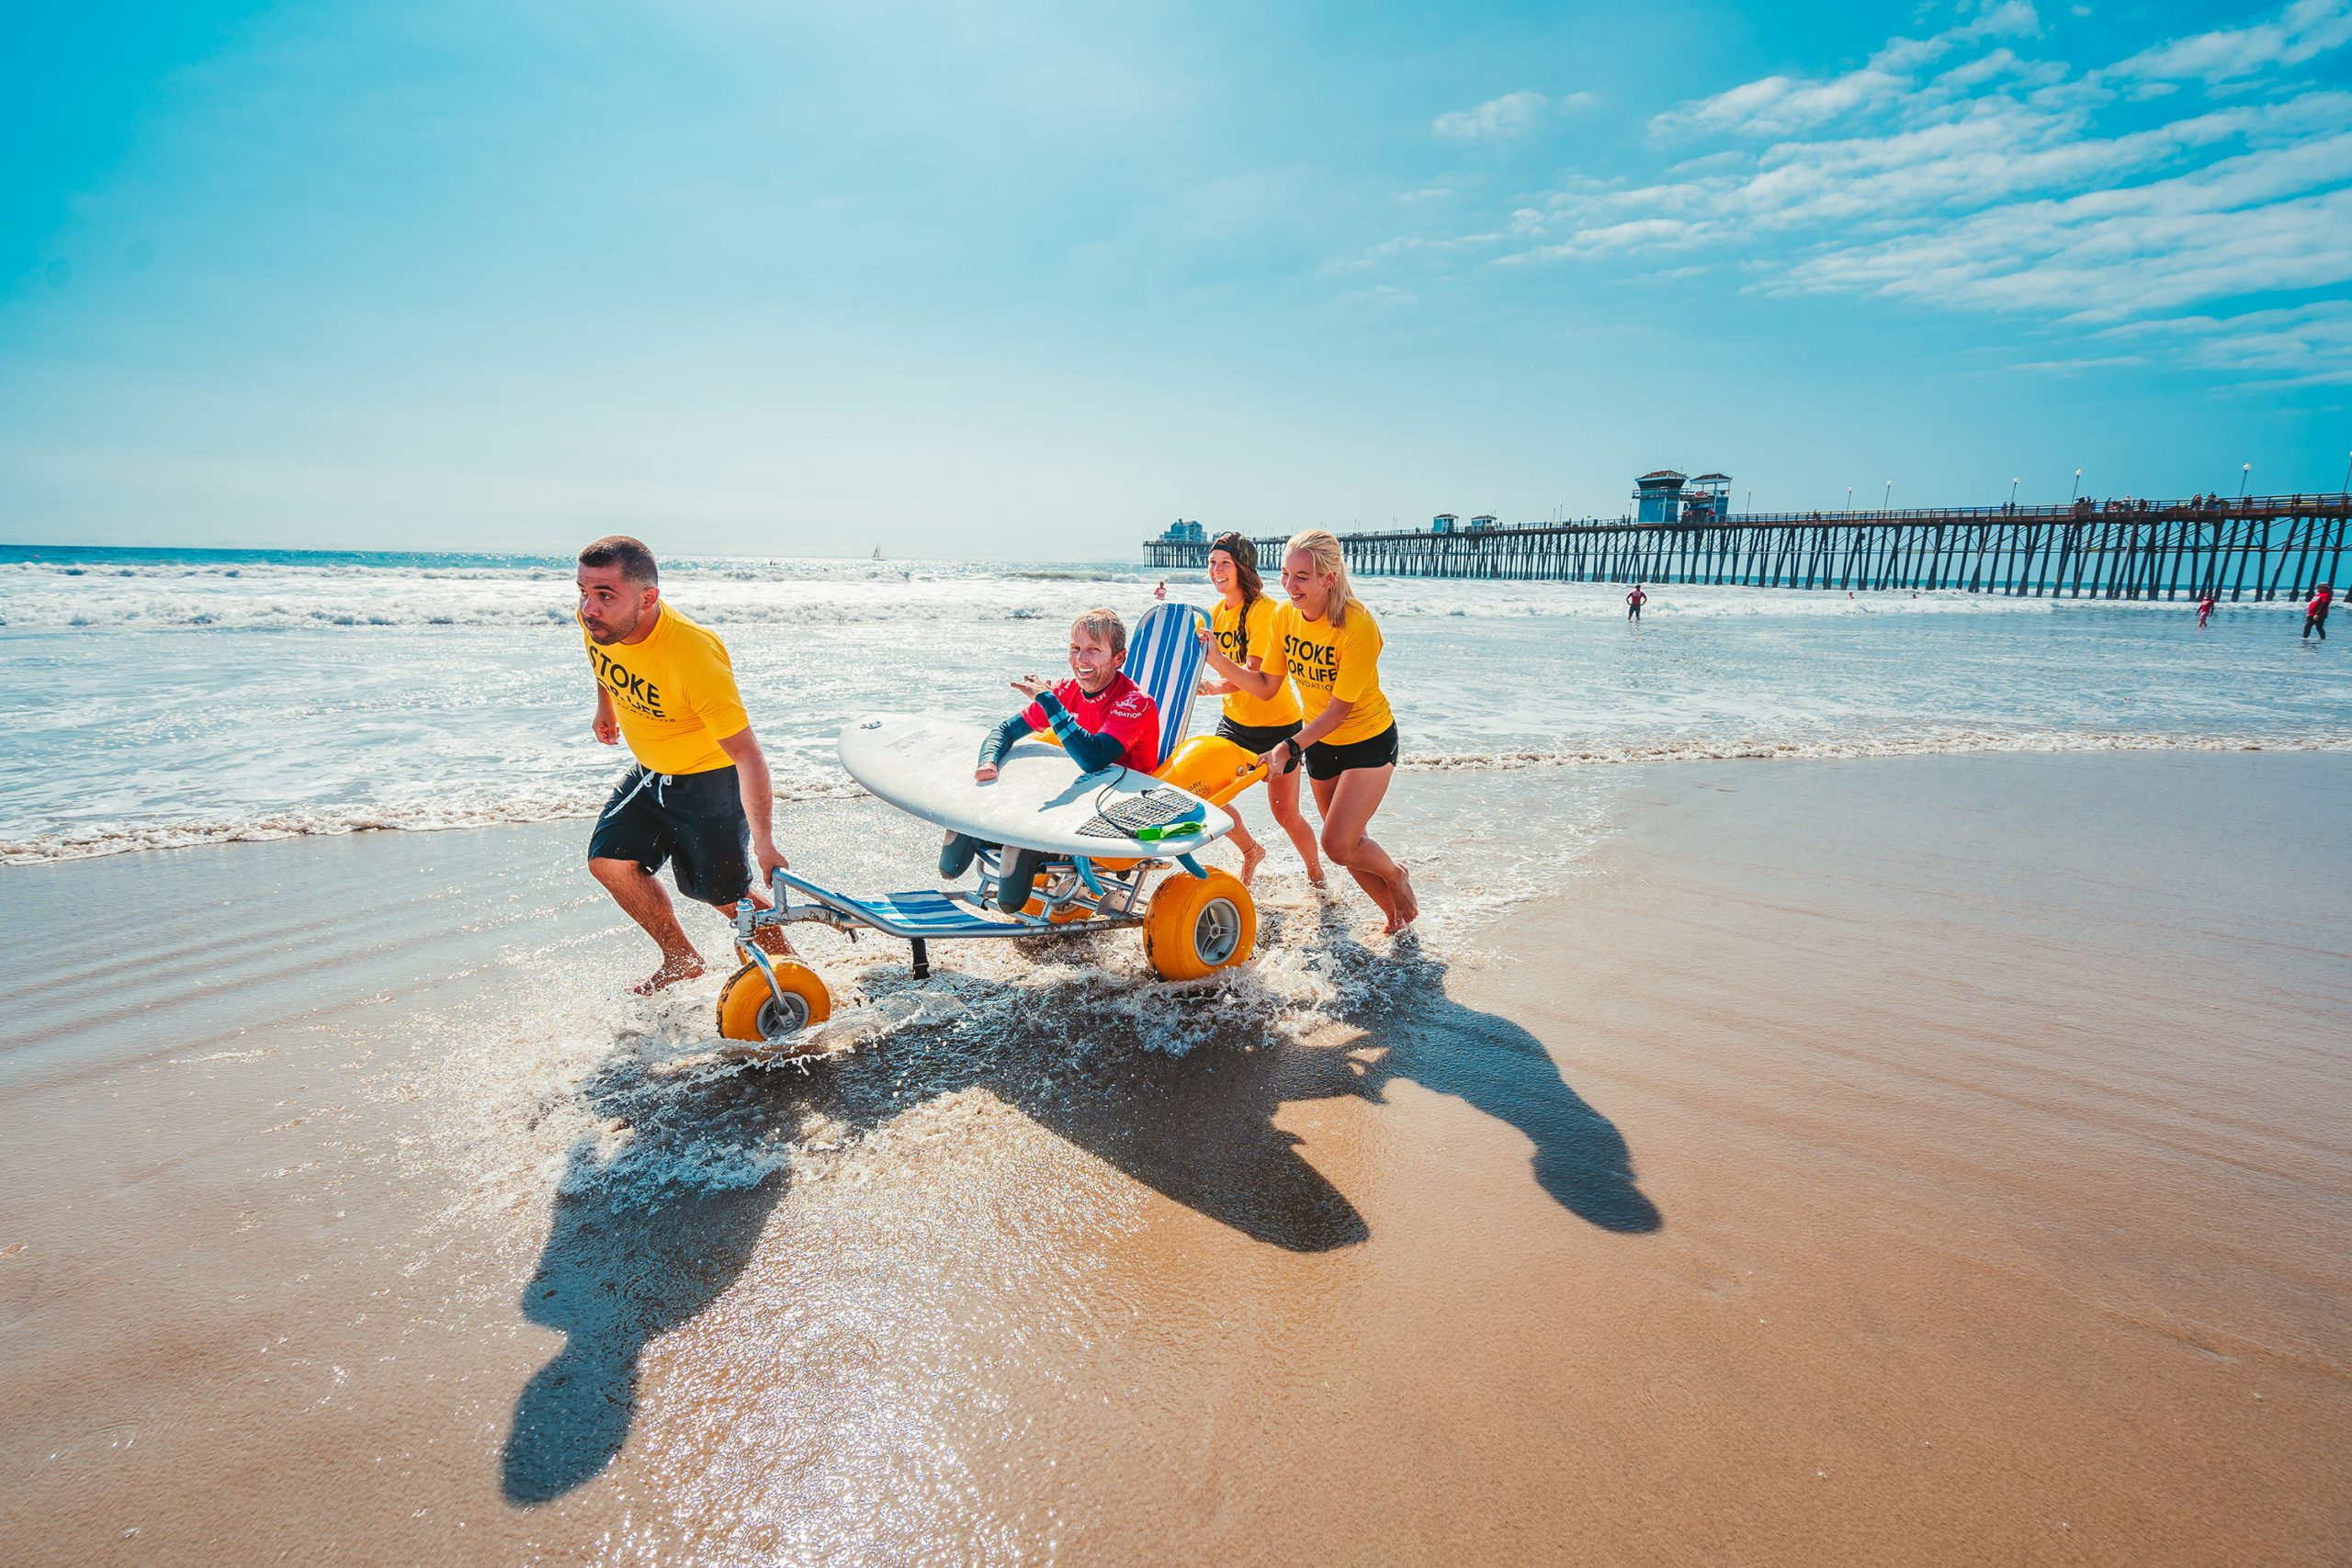 US Open Adaptive Surfing Championships in 2019